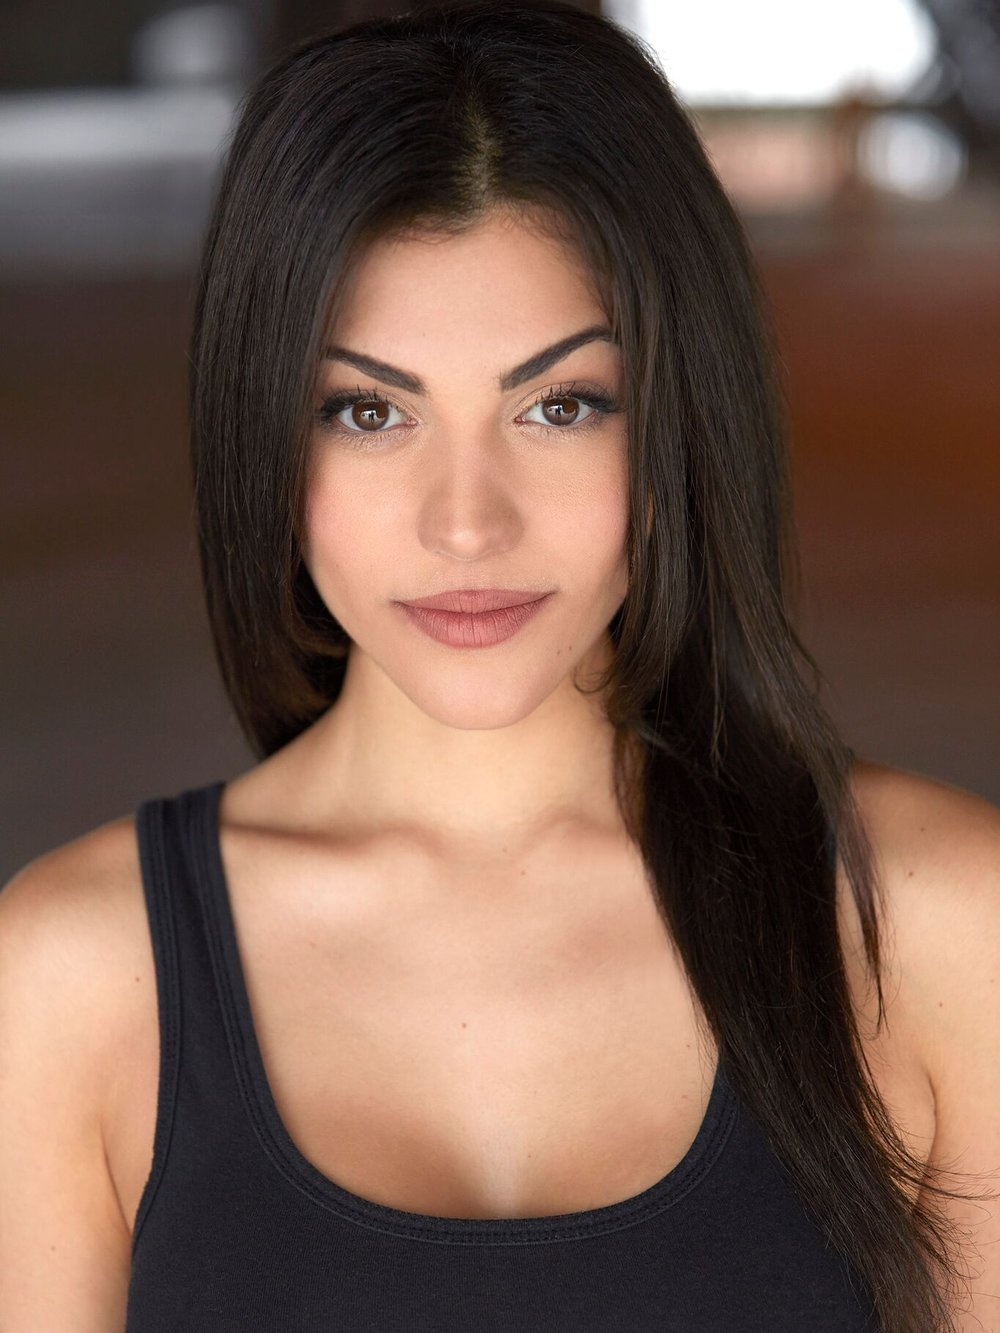 Orit - Height: 5'7Origin: Calabasas, CABio: Beautiful actor/model & experienced bartender.!